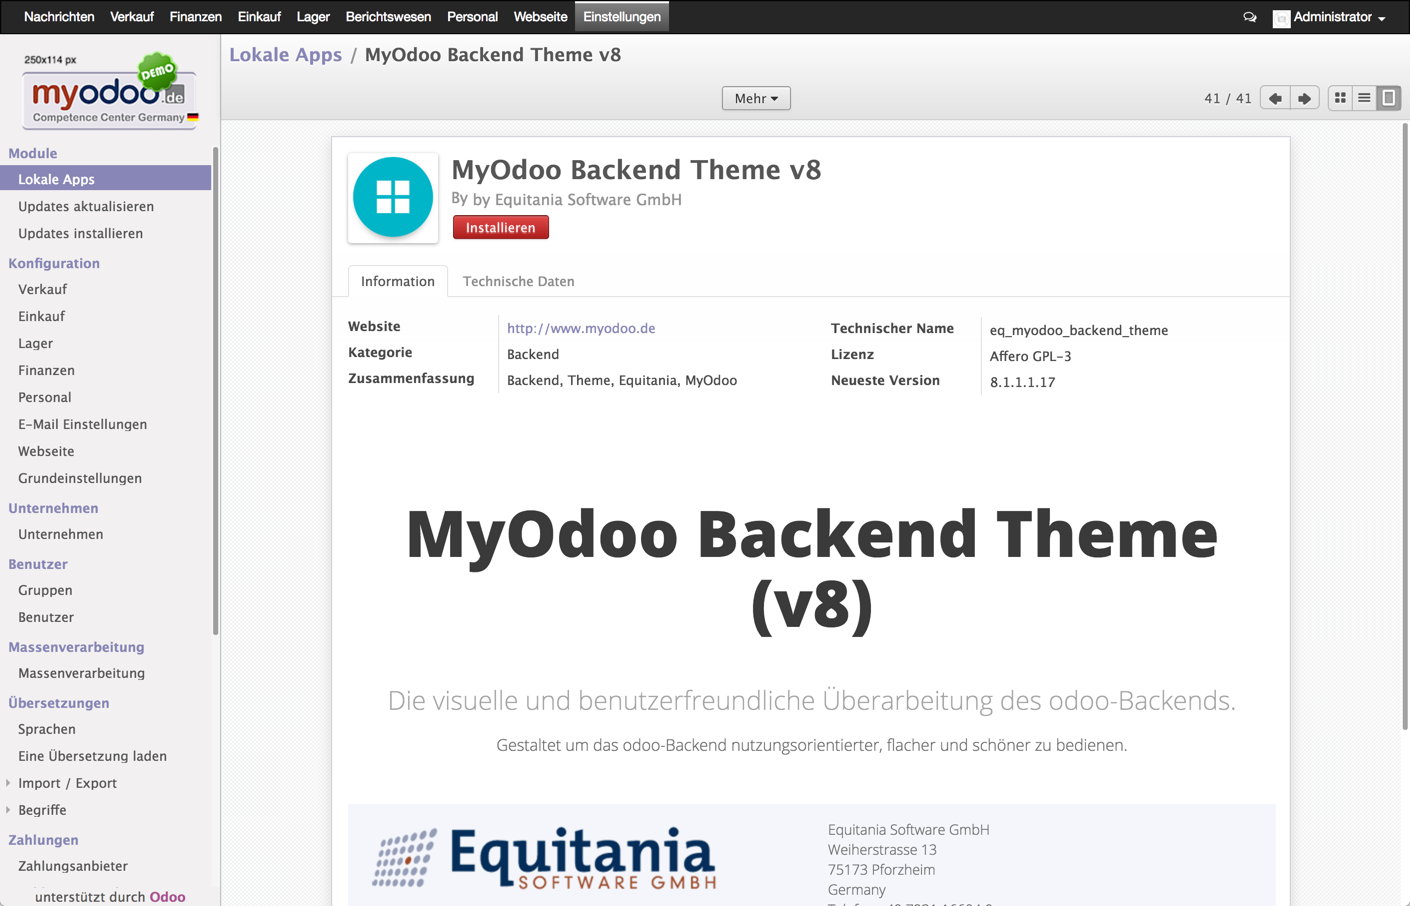 Odoo: MyOdoo Backend Theme v8